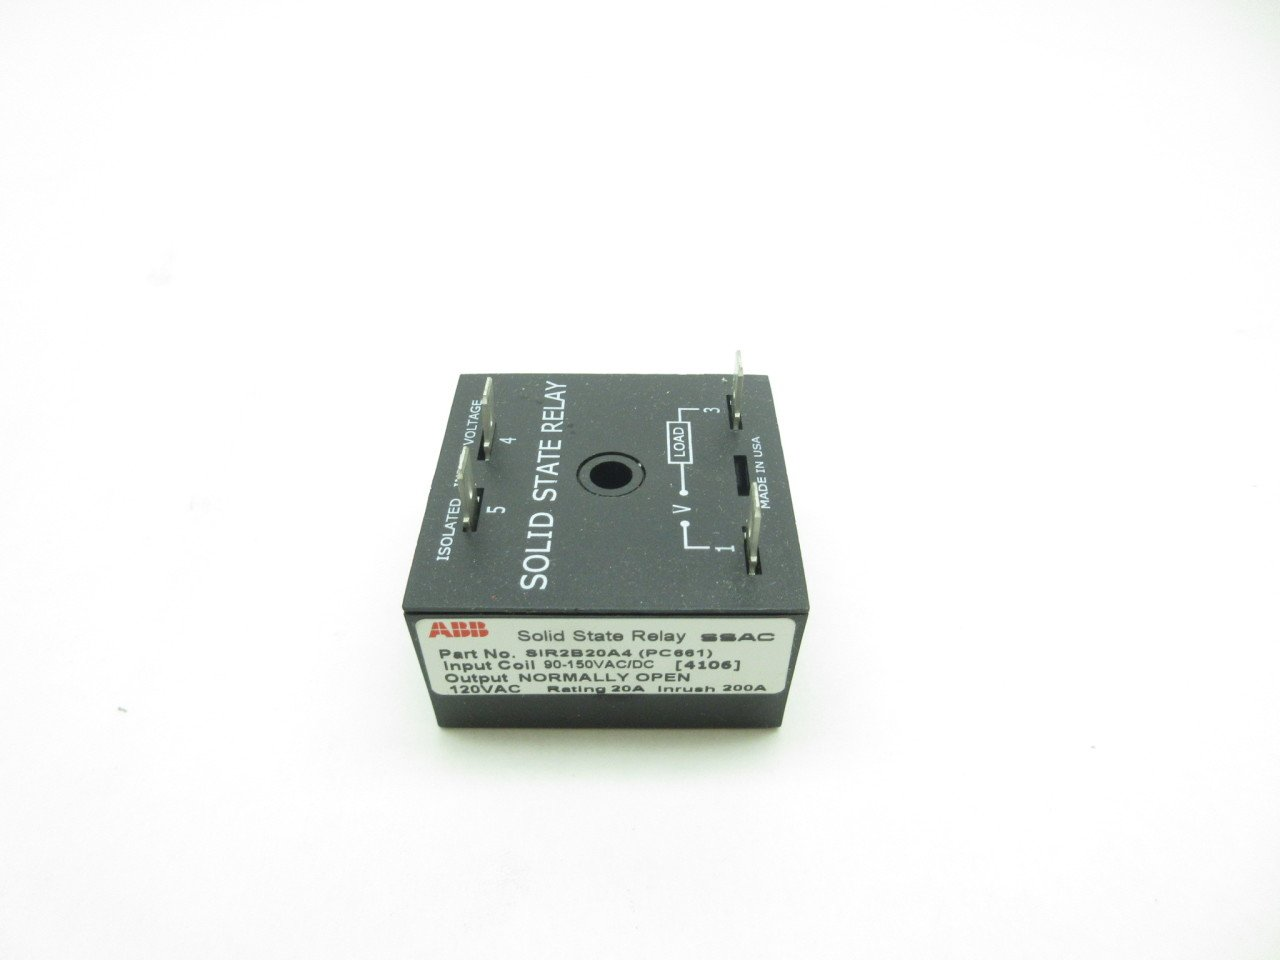 New Abb Sir2b20a4 Pc661 Ssac Solid State Relay 90 150v Ac Dc D584148 Vs Coil Industrial Scientific